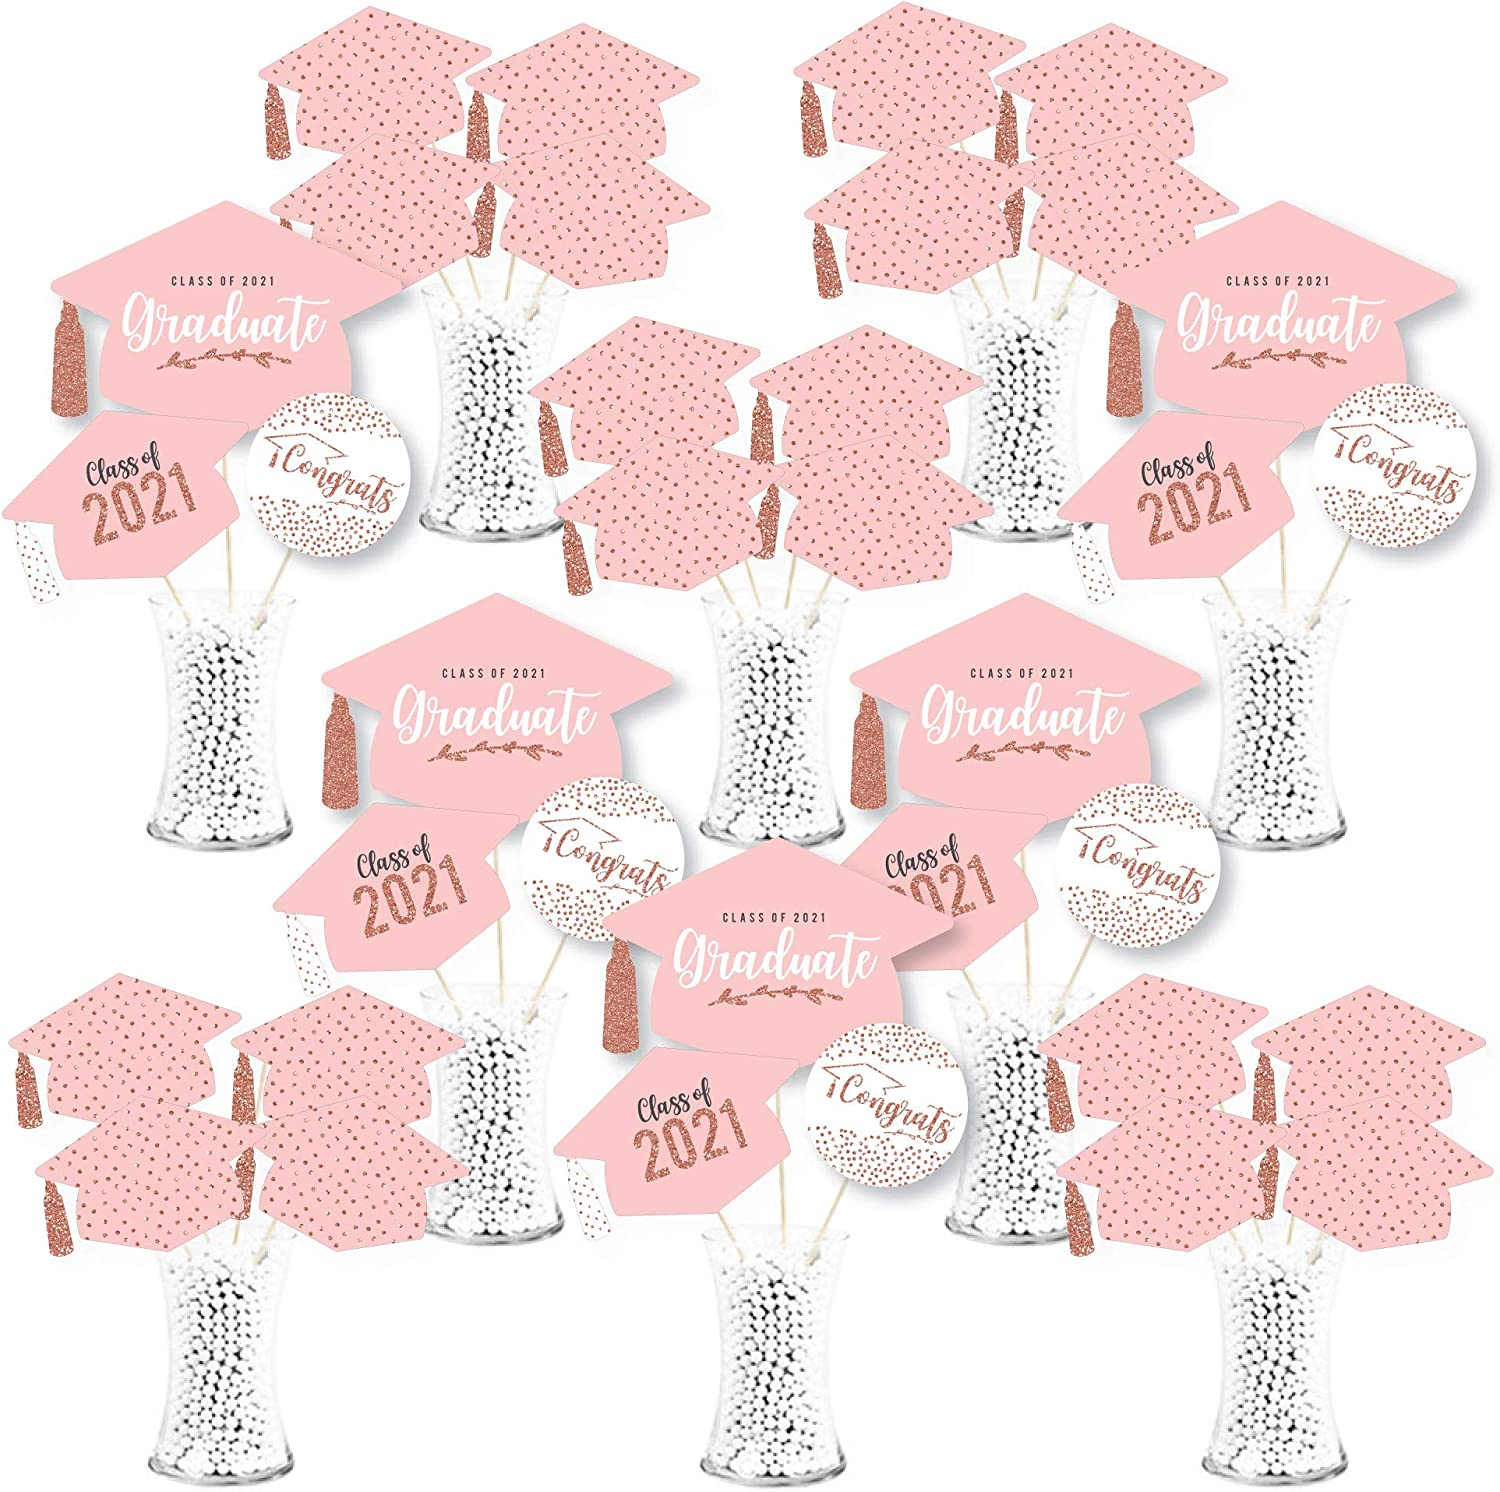 Big Dot of Happiness Rose Gold Grad - 2021 Graduation Party Centerpiece Sticks - Showstopper Table Toppers - 35 Pieces